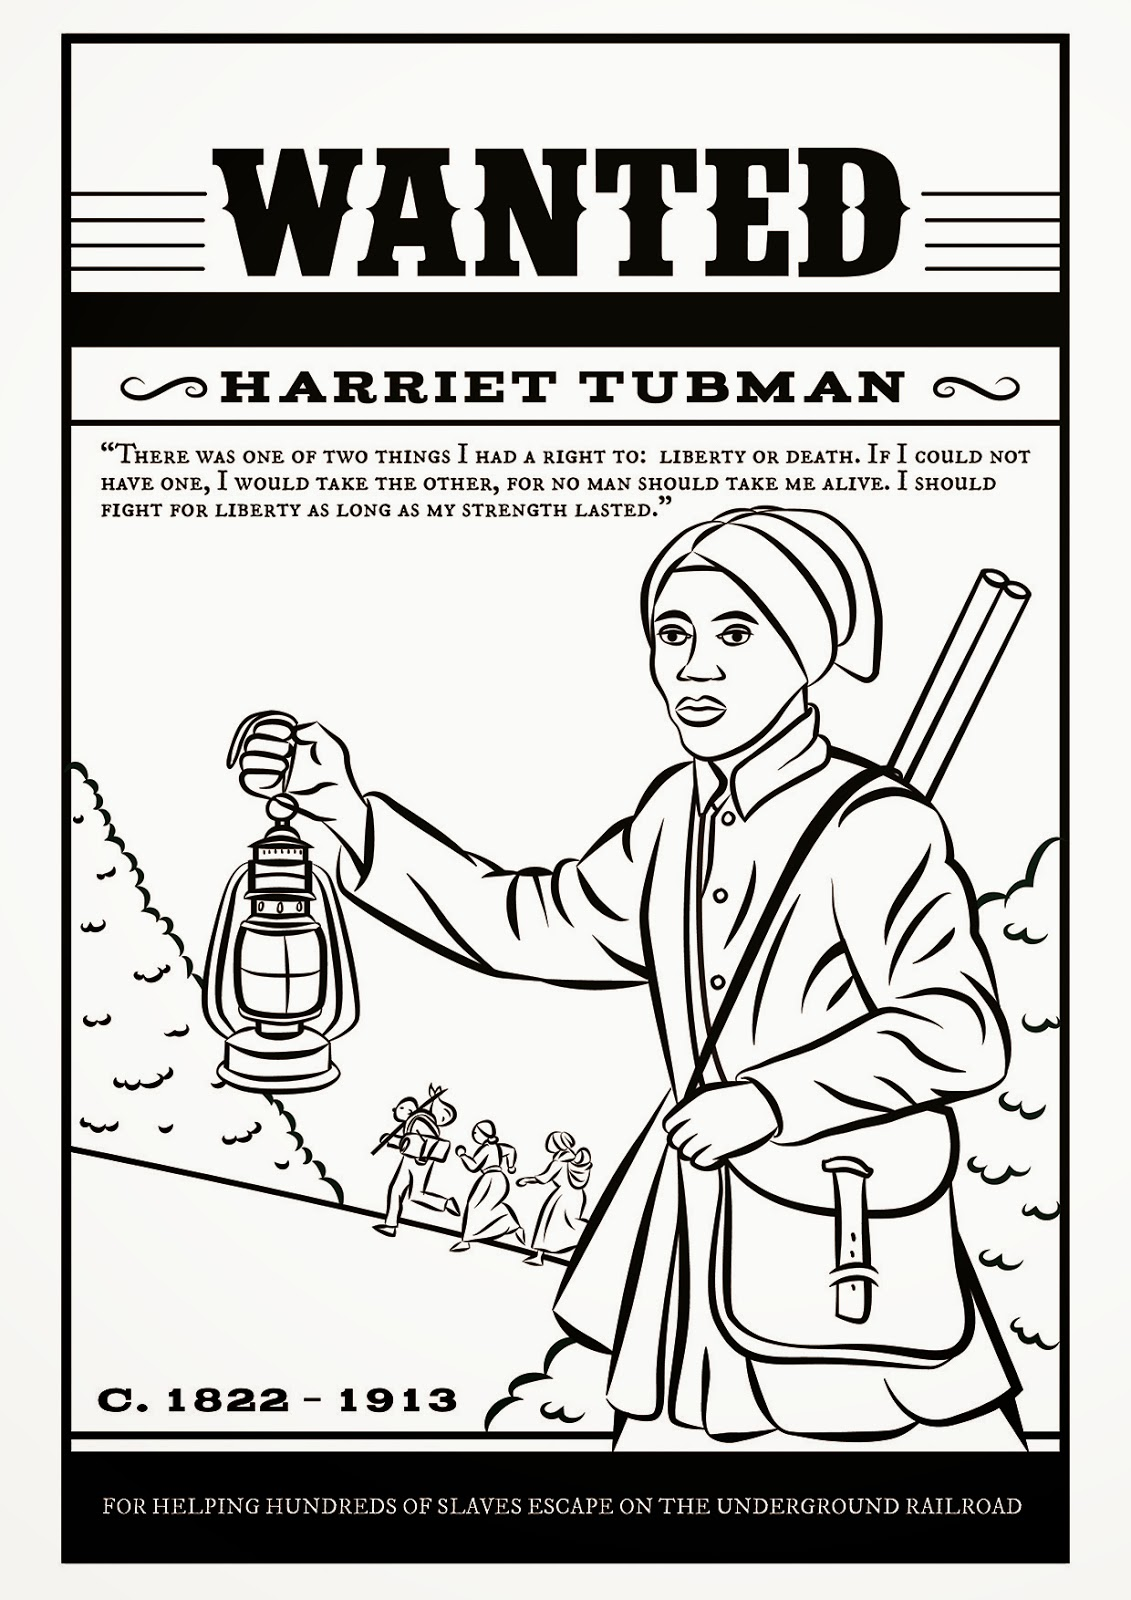 Harriet tubman free colouring page links